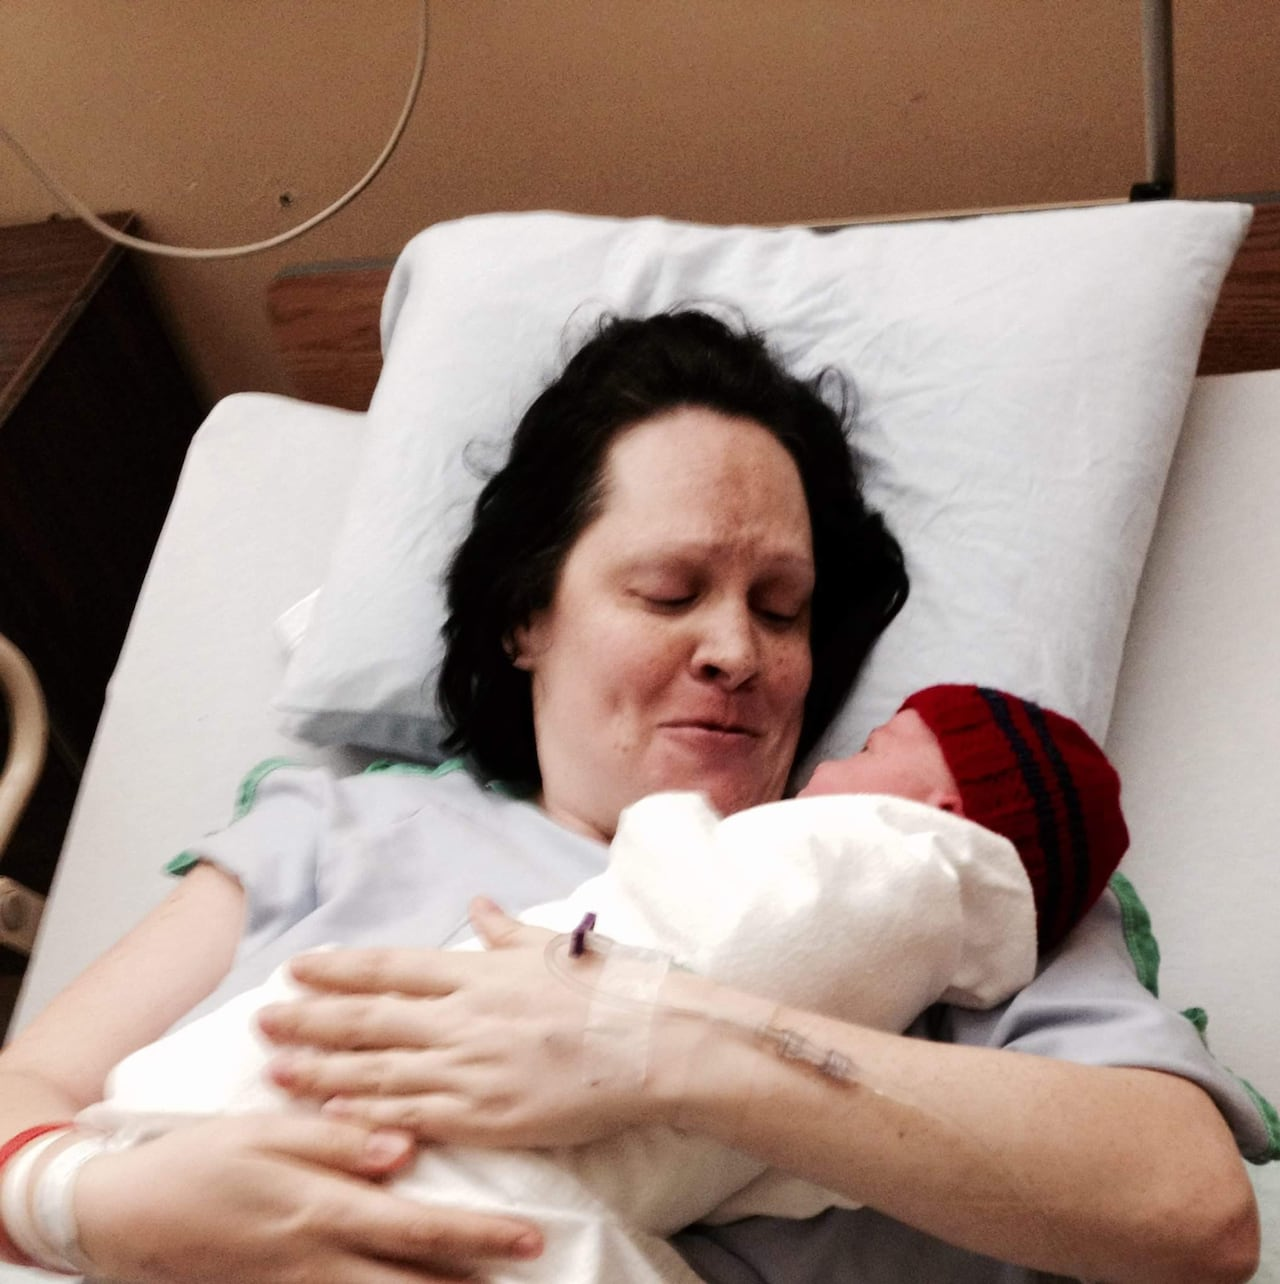 A scene from a horror movie': 9 mothers speak out about alleged